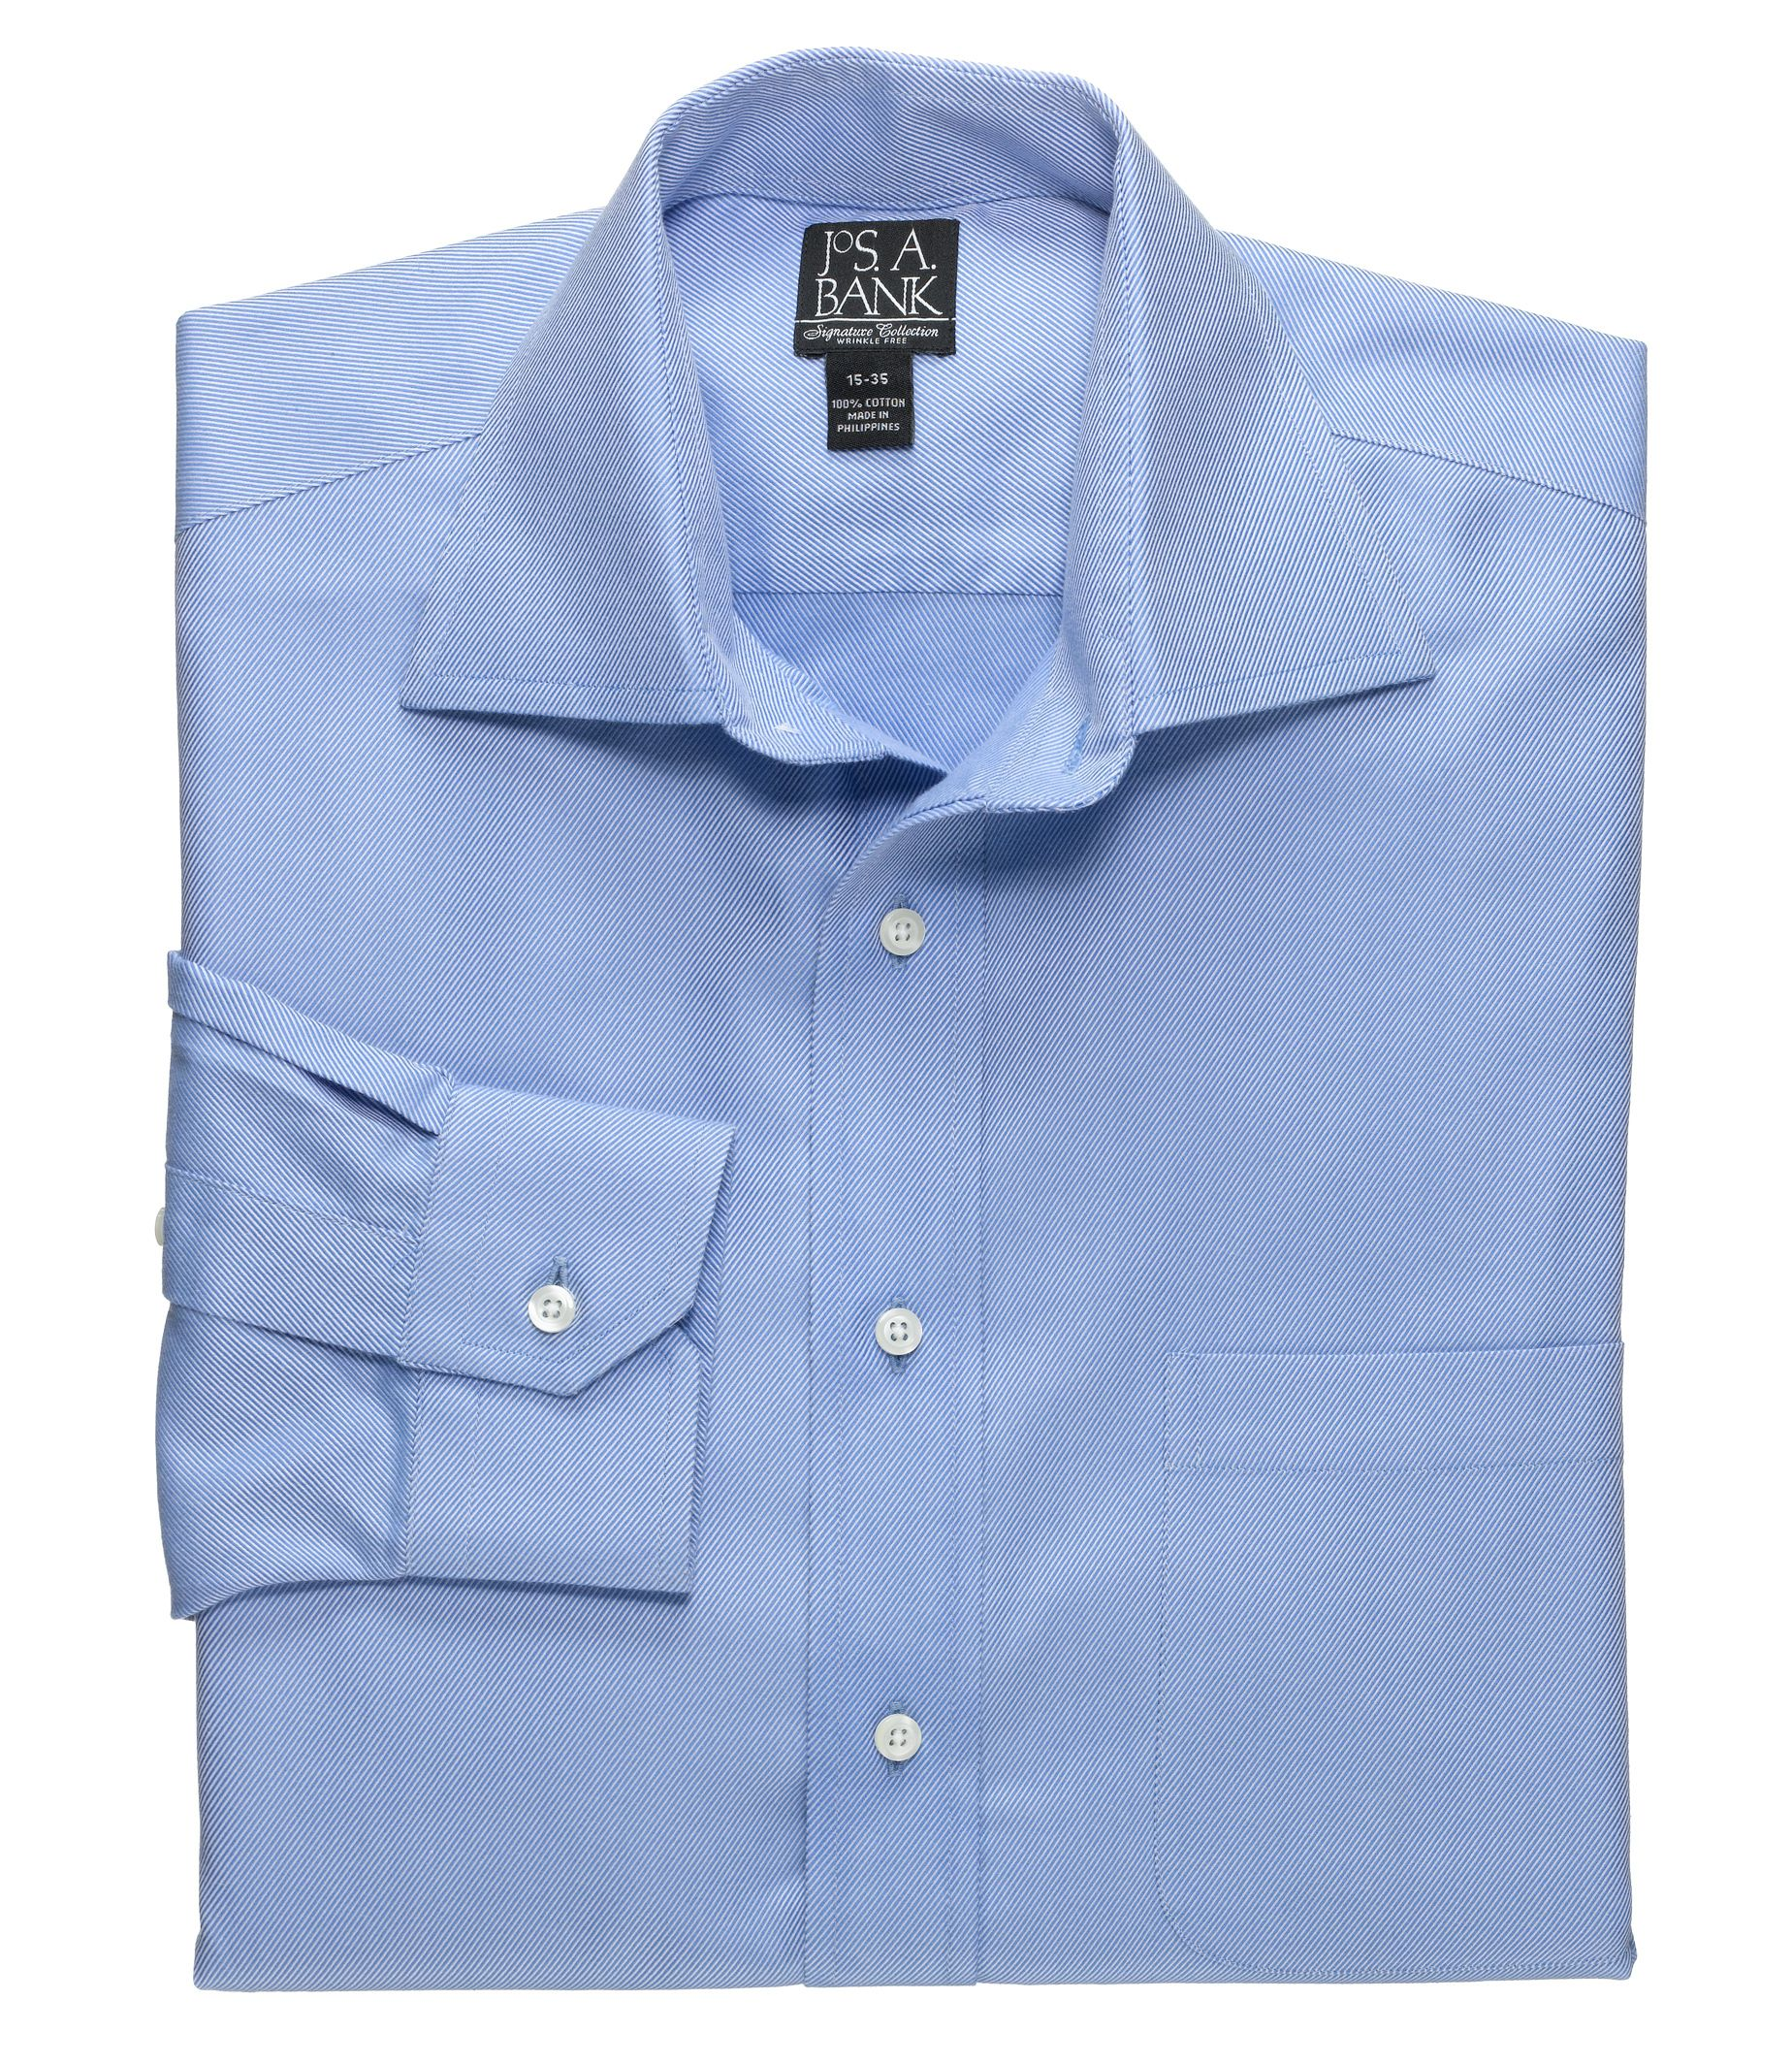 Jos A Bank Signature Wrinkle Free Dress Shirts Just 24: best wrinkle free dress shirts